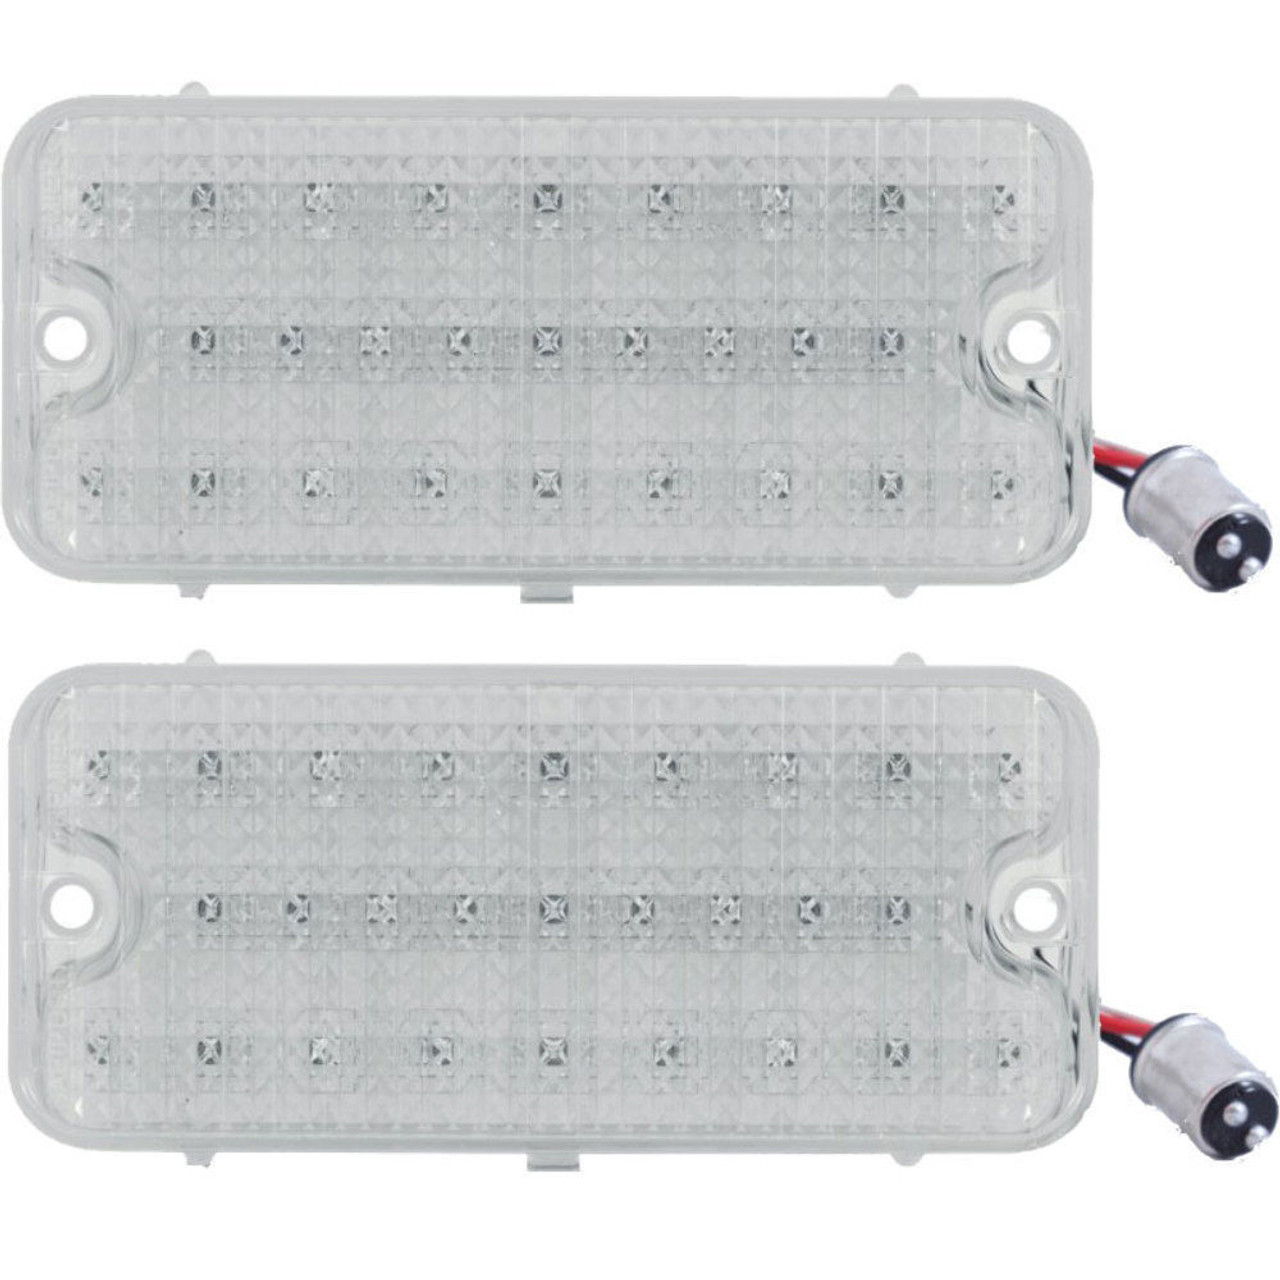 (2) LED Park Light - Clear Lens w/ Amber LED, Pair, Fits Chevy Truck 1967-1968